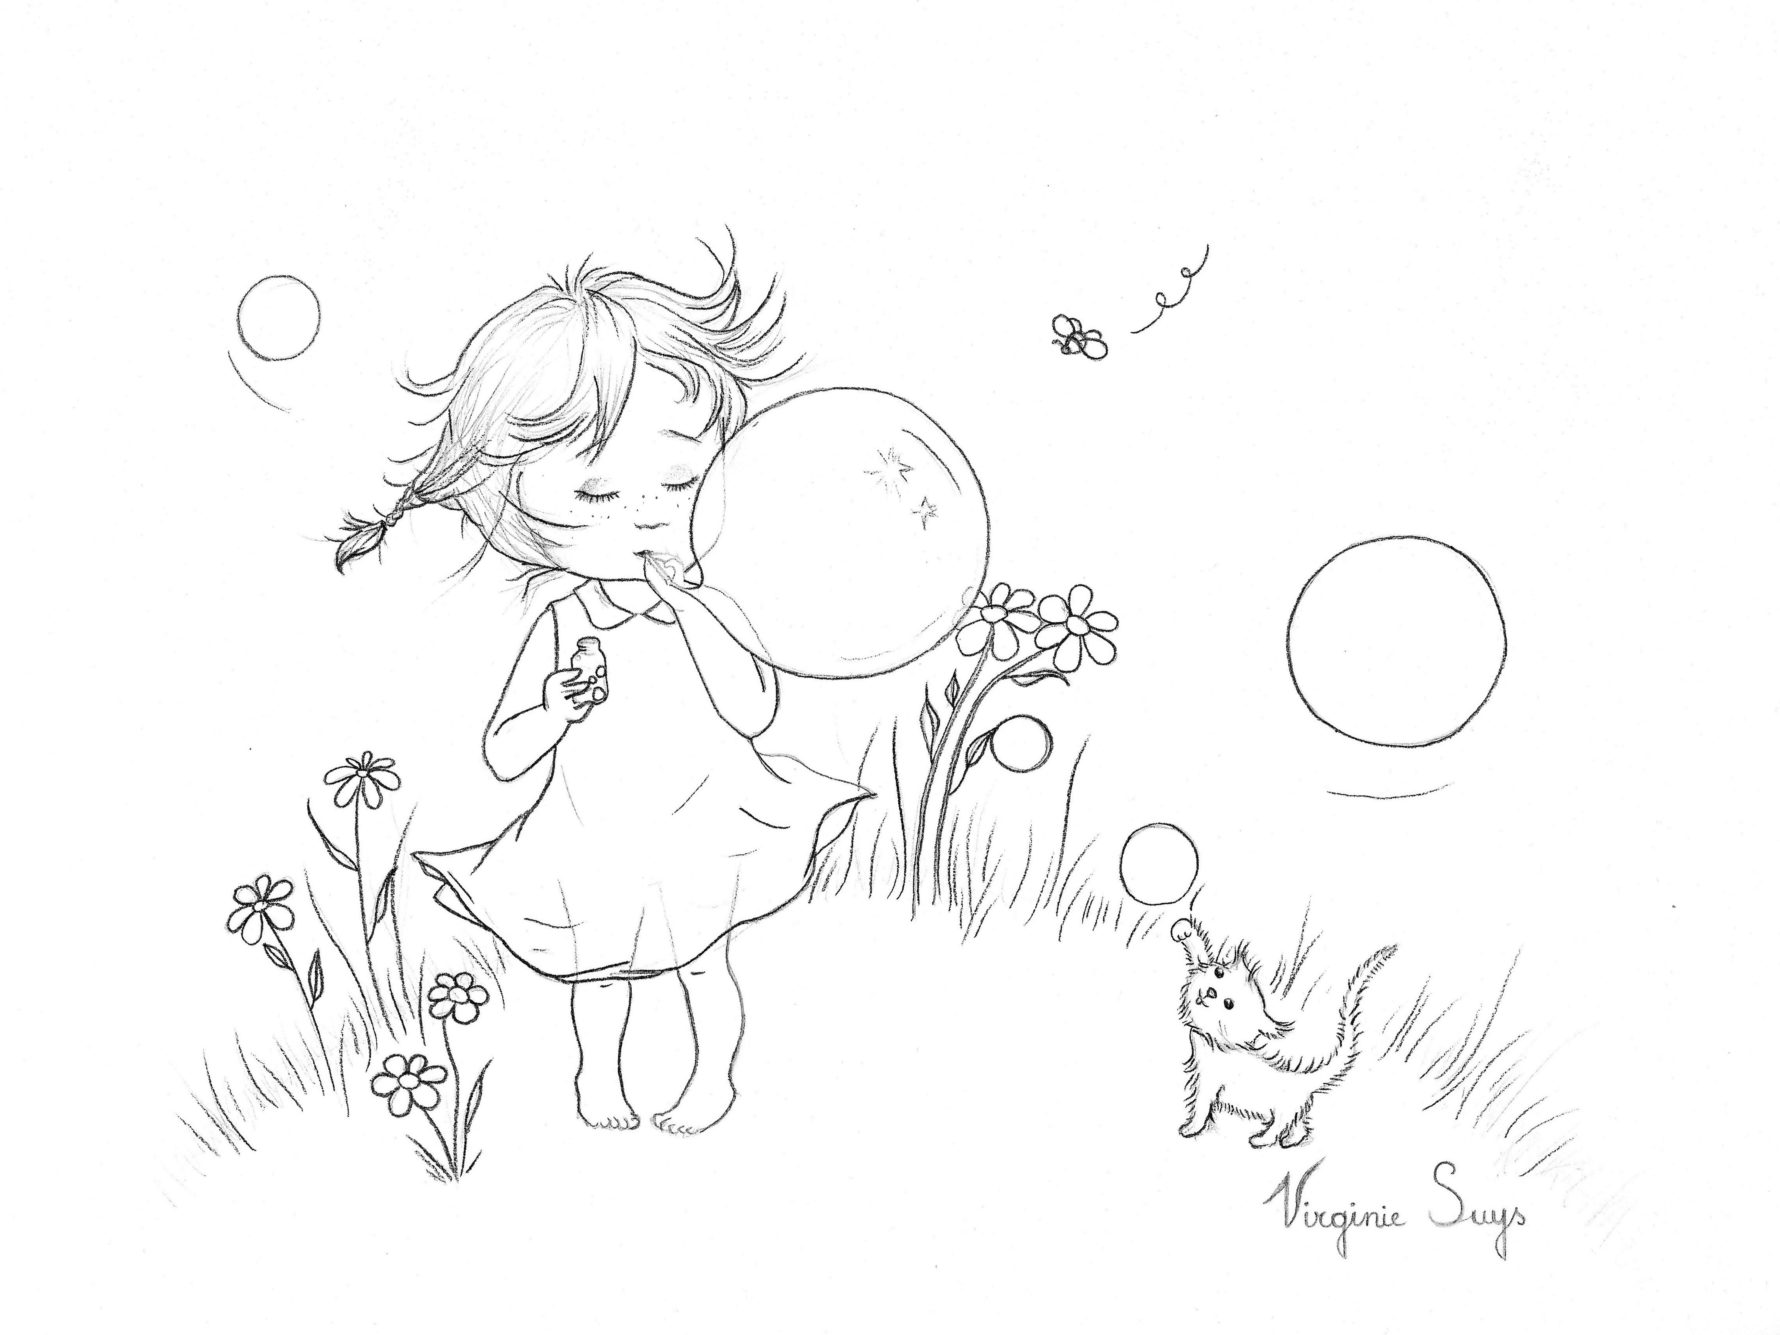 Virginie Suys Bubbly girl in black & white illustration